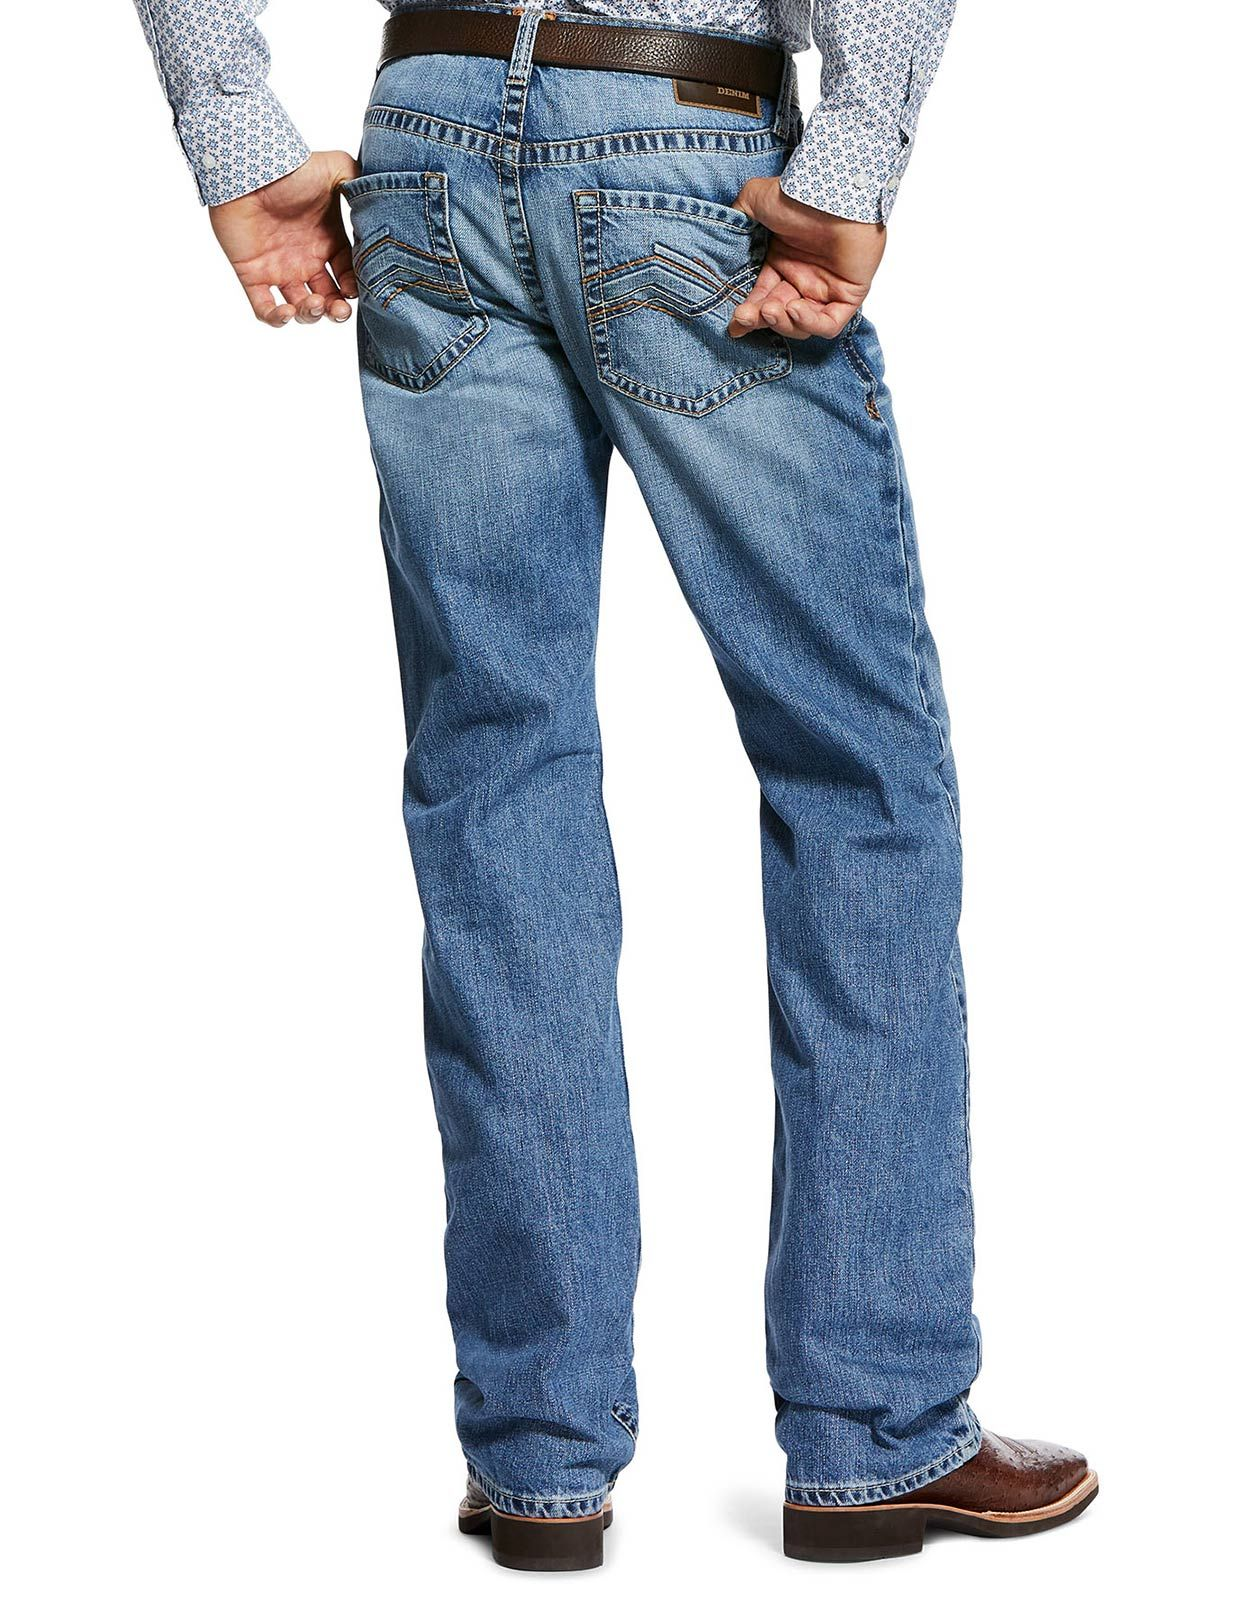 Ariat Men's M4 Low Rise Relaxed Fit Boot Cut Jeans - Baylor